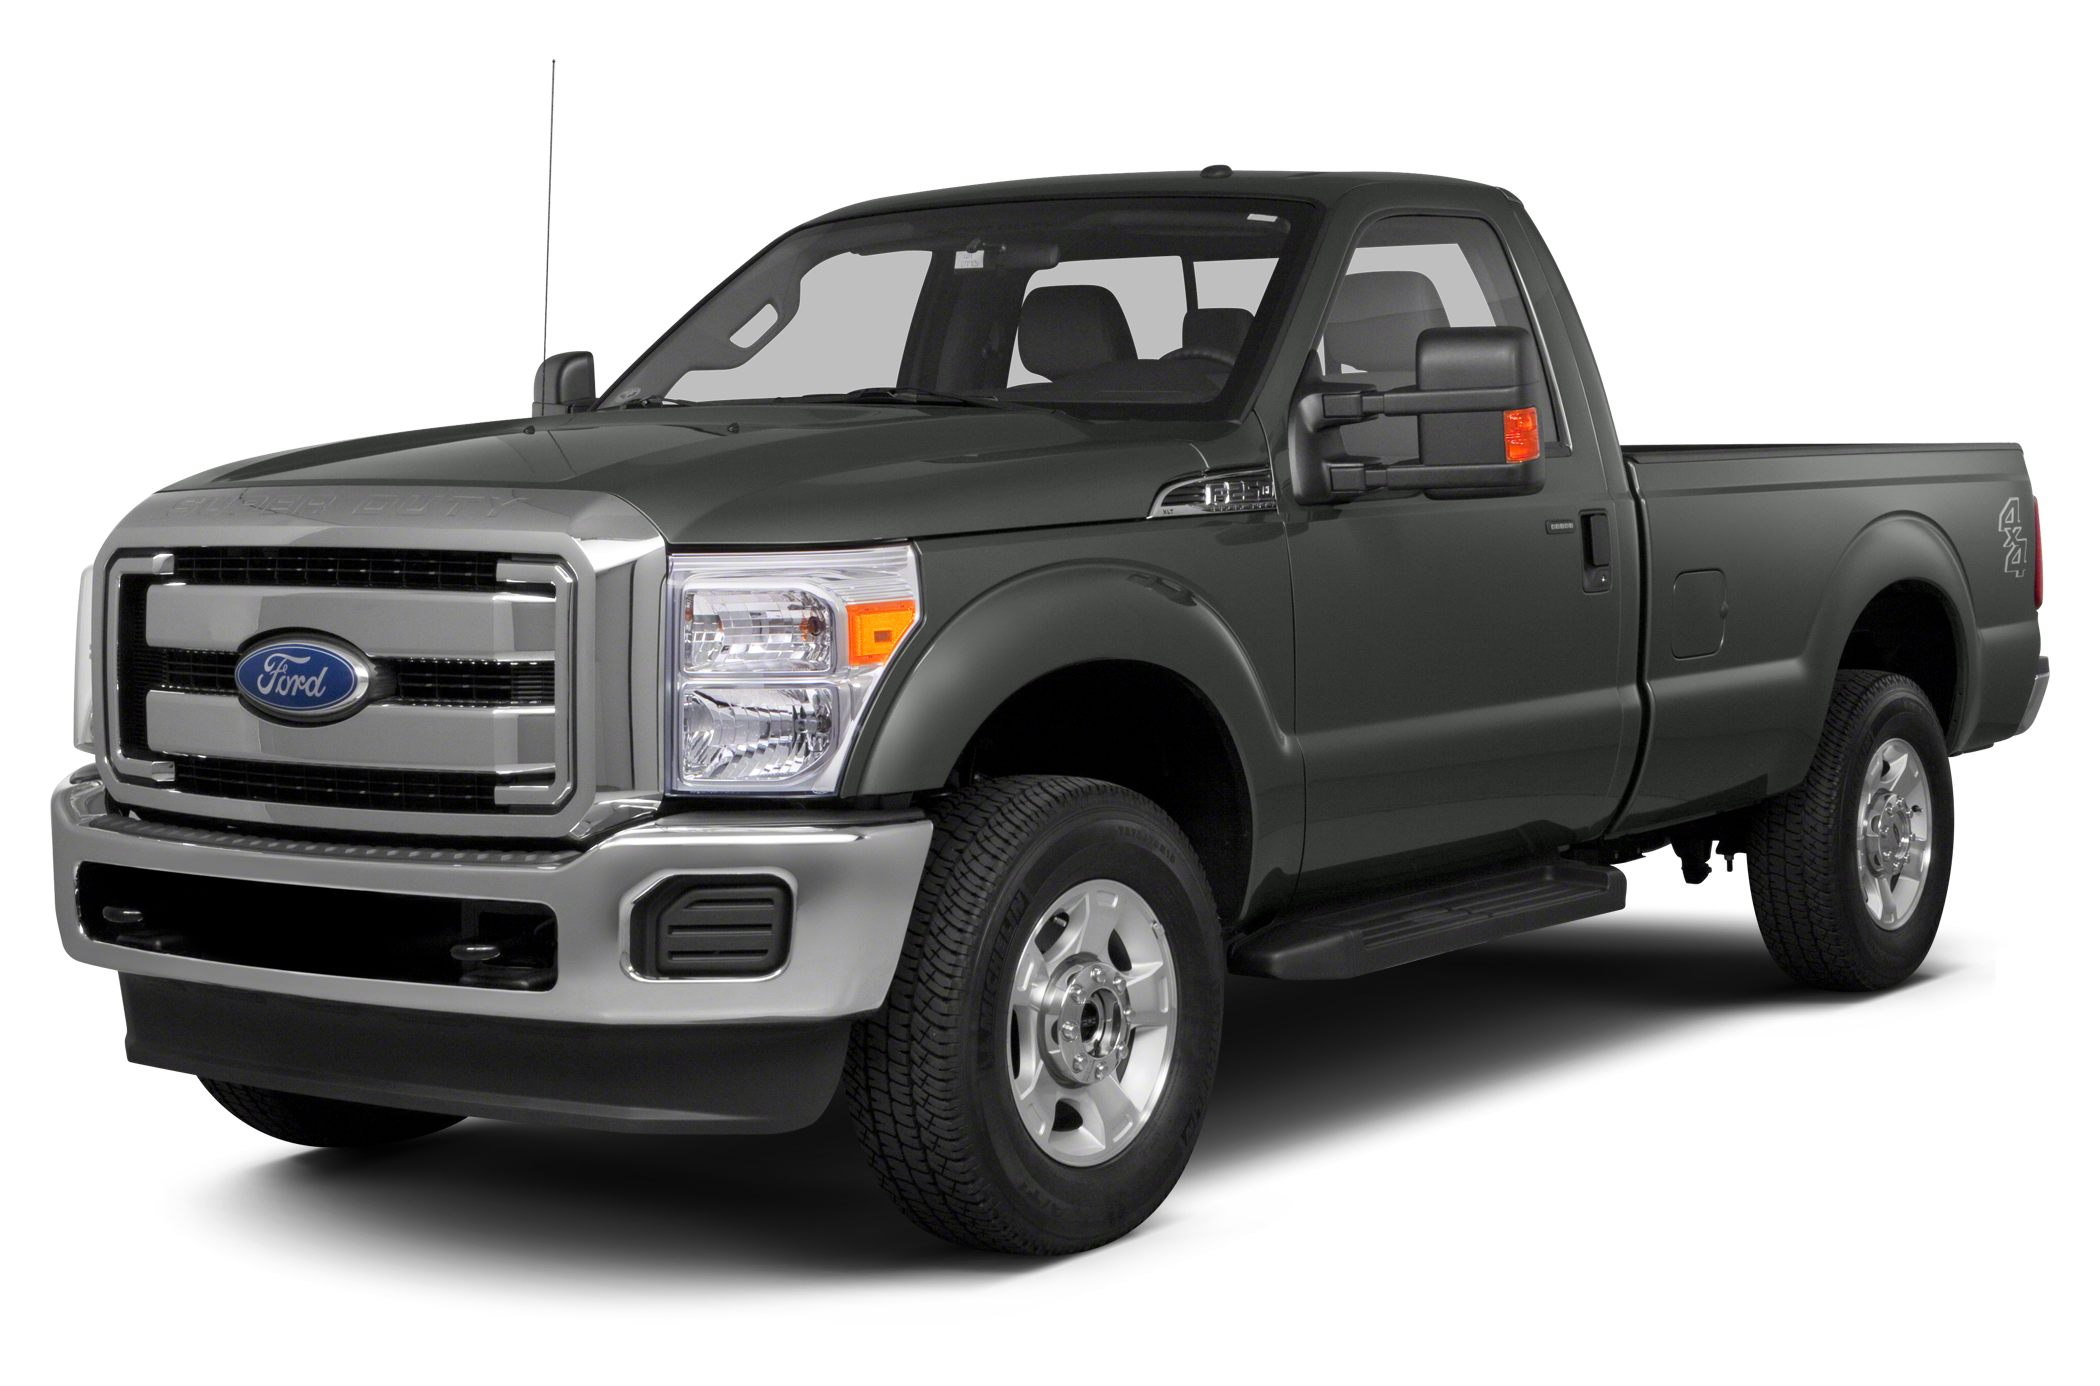 2013 Ford F250 XLT Crew Cab Pickup for sale in Brownsville for $48,795 with 36,757 miles.